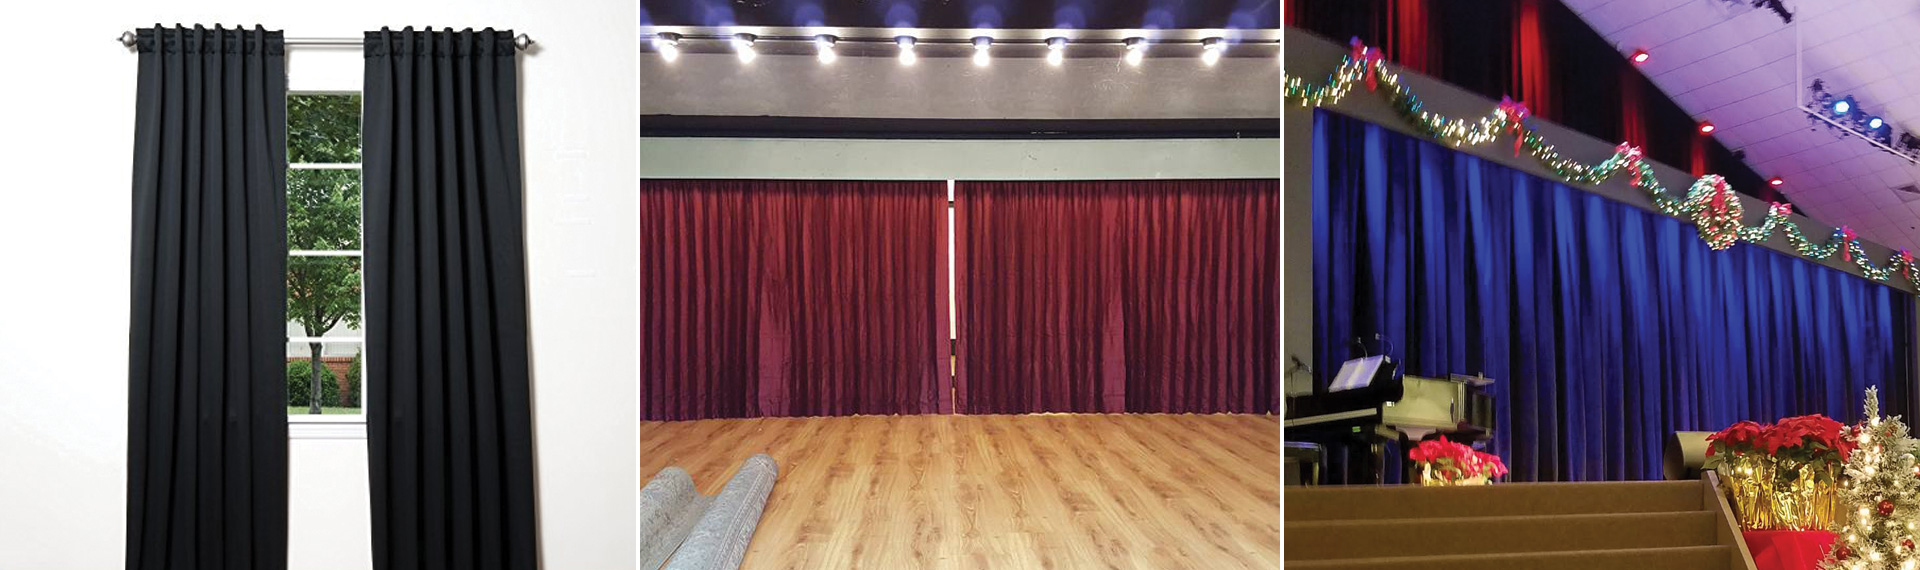 Custom Sewn, Luxury Cotton Velvet Curtains West Palm Beach FL